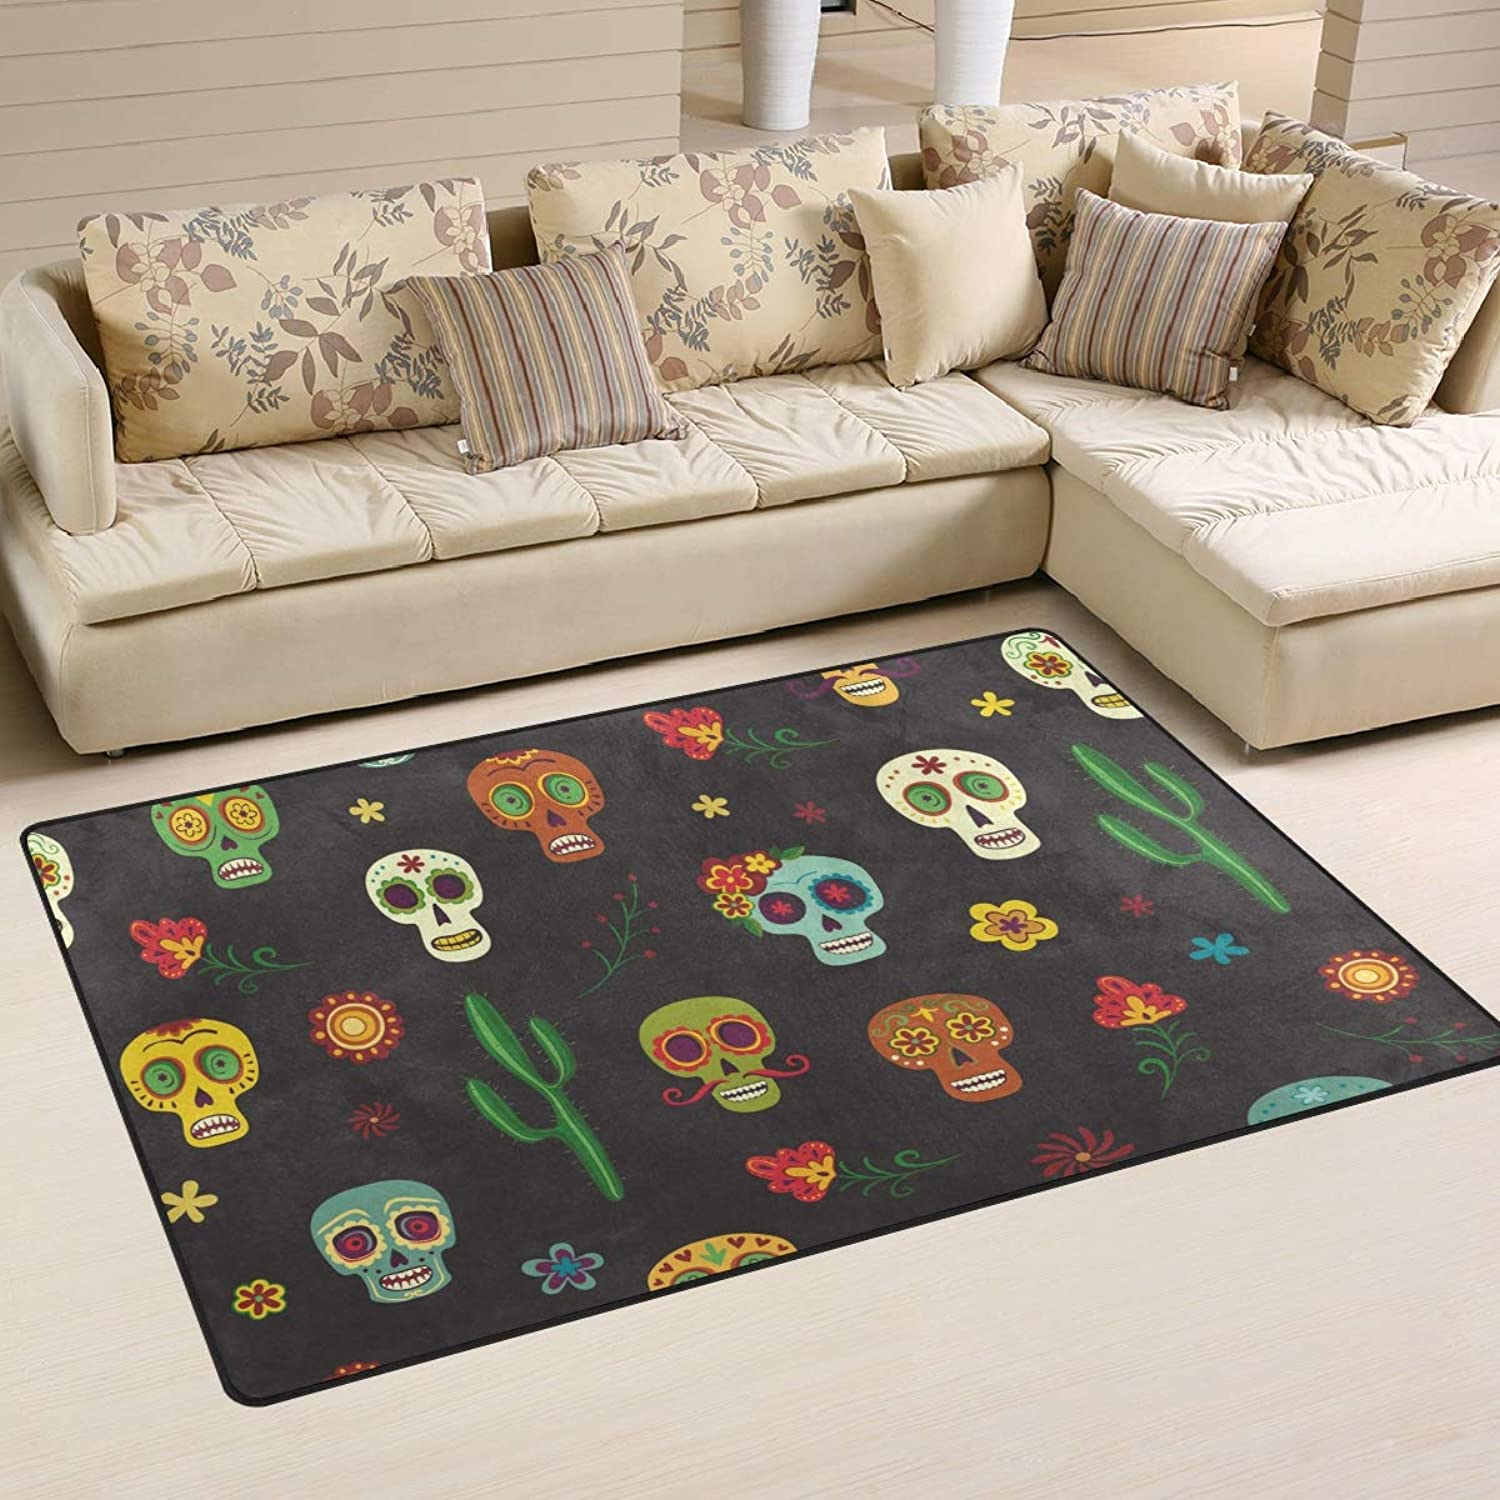 Area Rugs Doormats colorful Skull Cactus Flowers 5'x3'3 (60x39 Inches) Non-Slip Floor Mat Soft Carpet for Living Dining Bedroom Home